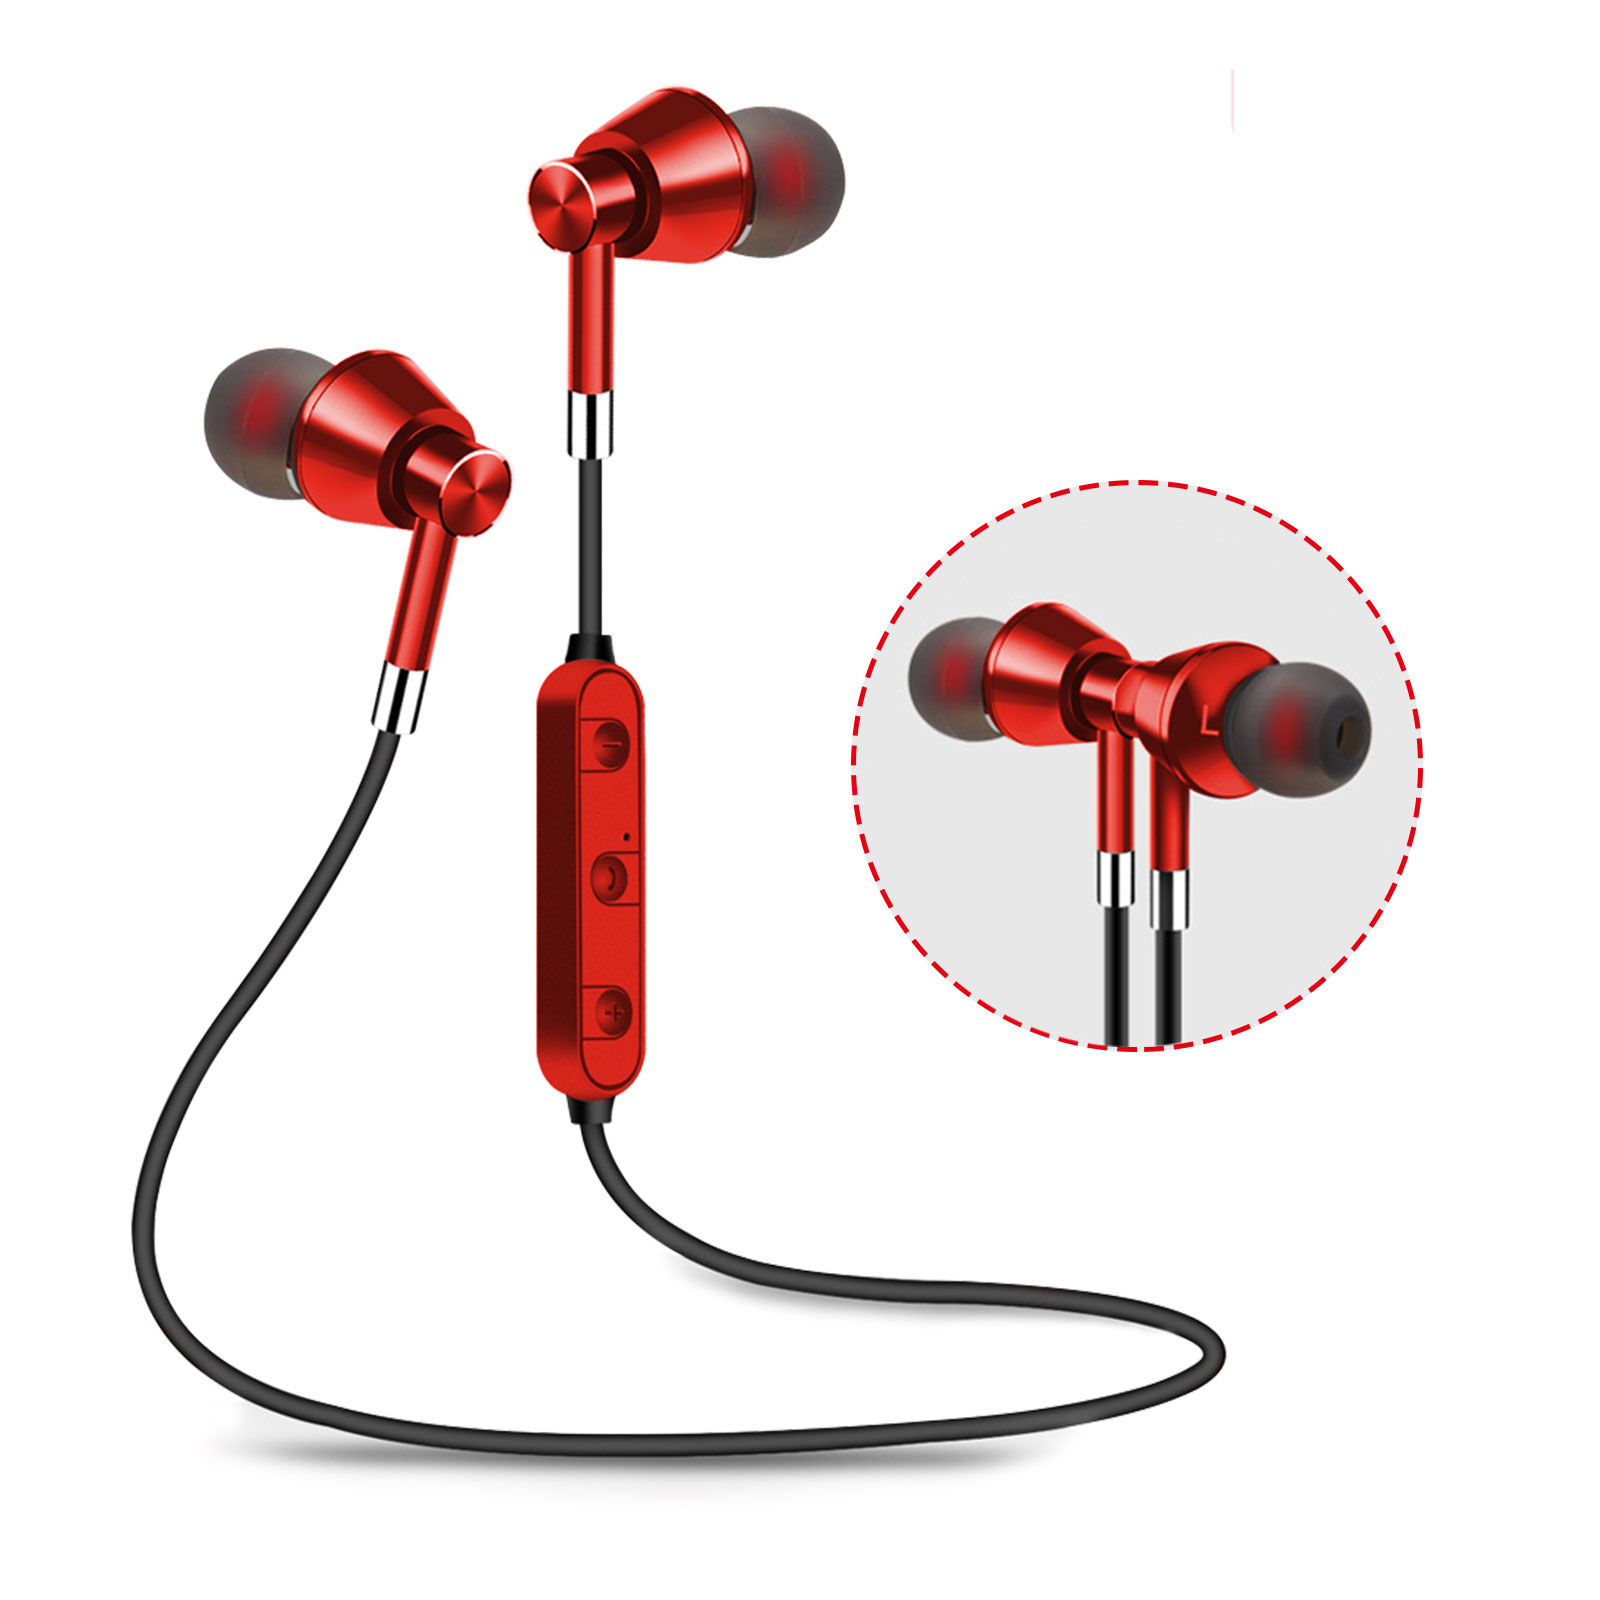 Wireless Bluetooth Headphones with Data Cable, Sport Earbuds Lightweight Magnetic Earbuds Sweatproof in Ear Earphones with Built-in Mic for Running Gym Workout